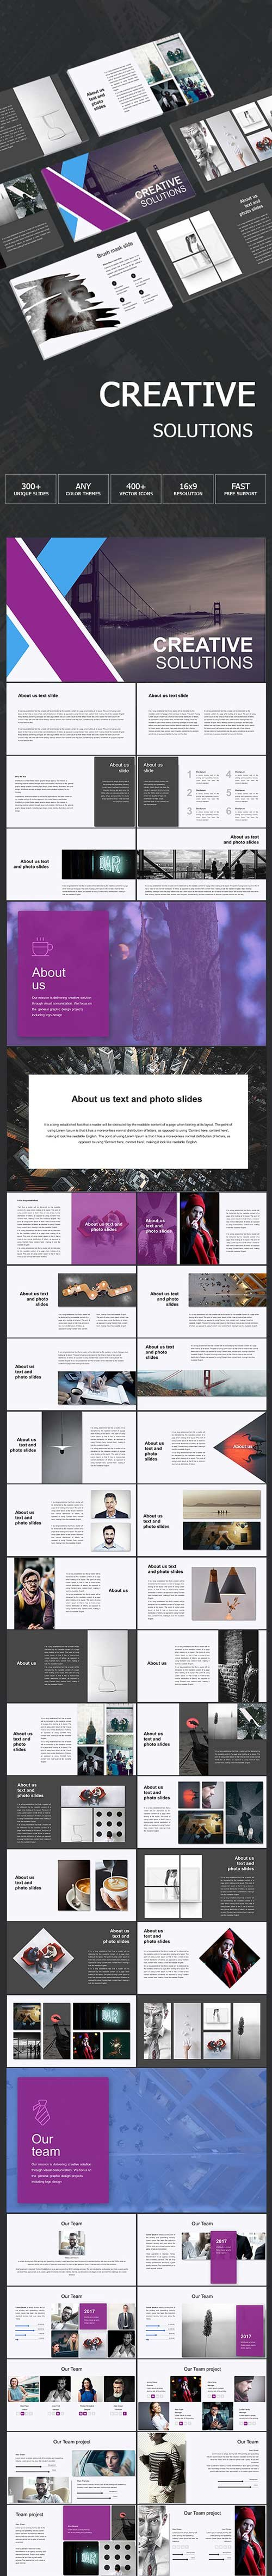 GraphicRiver - Creative Solutions 22327743